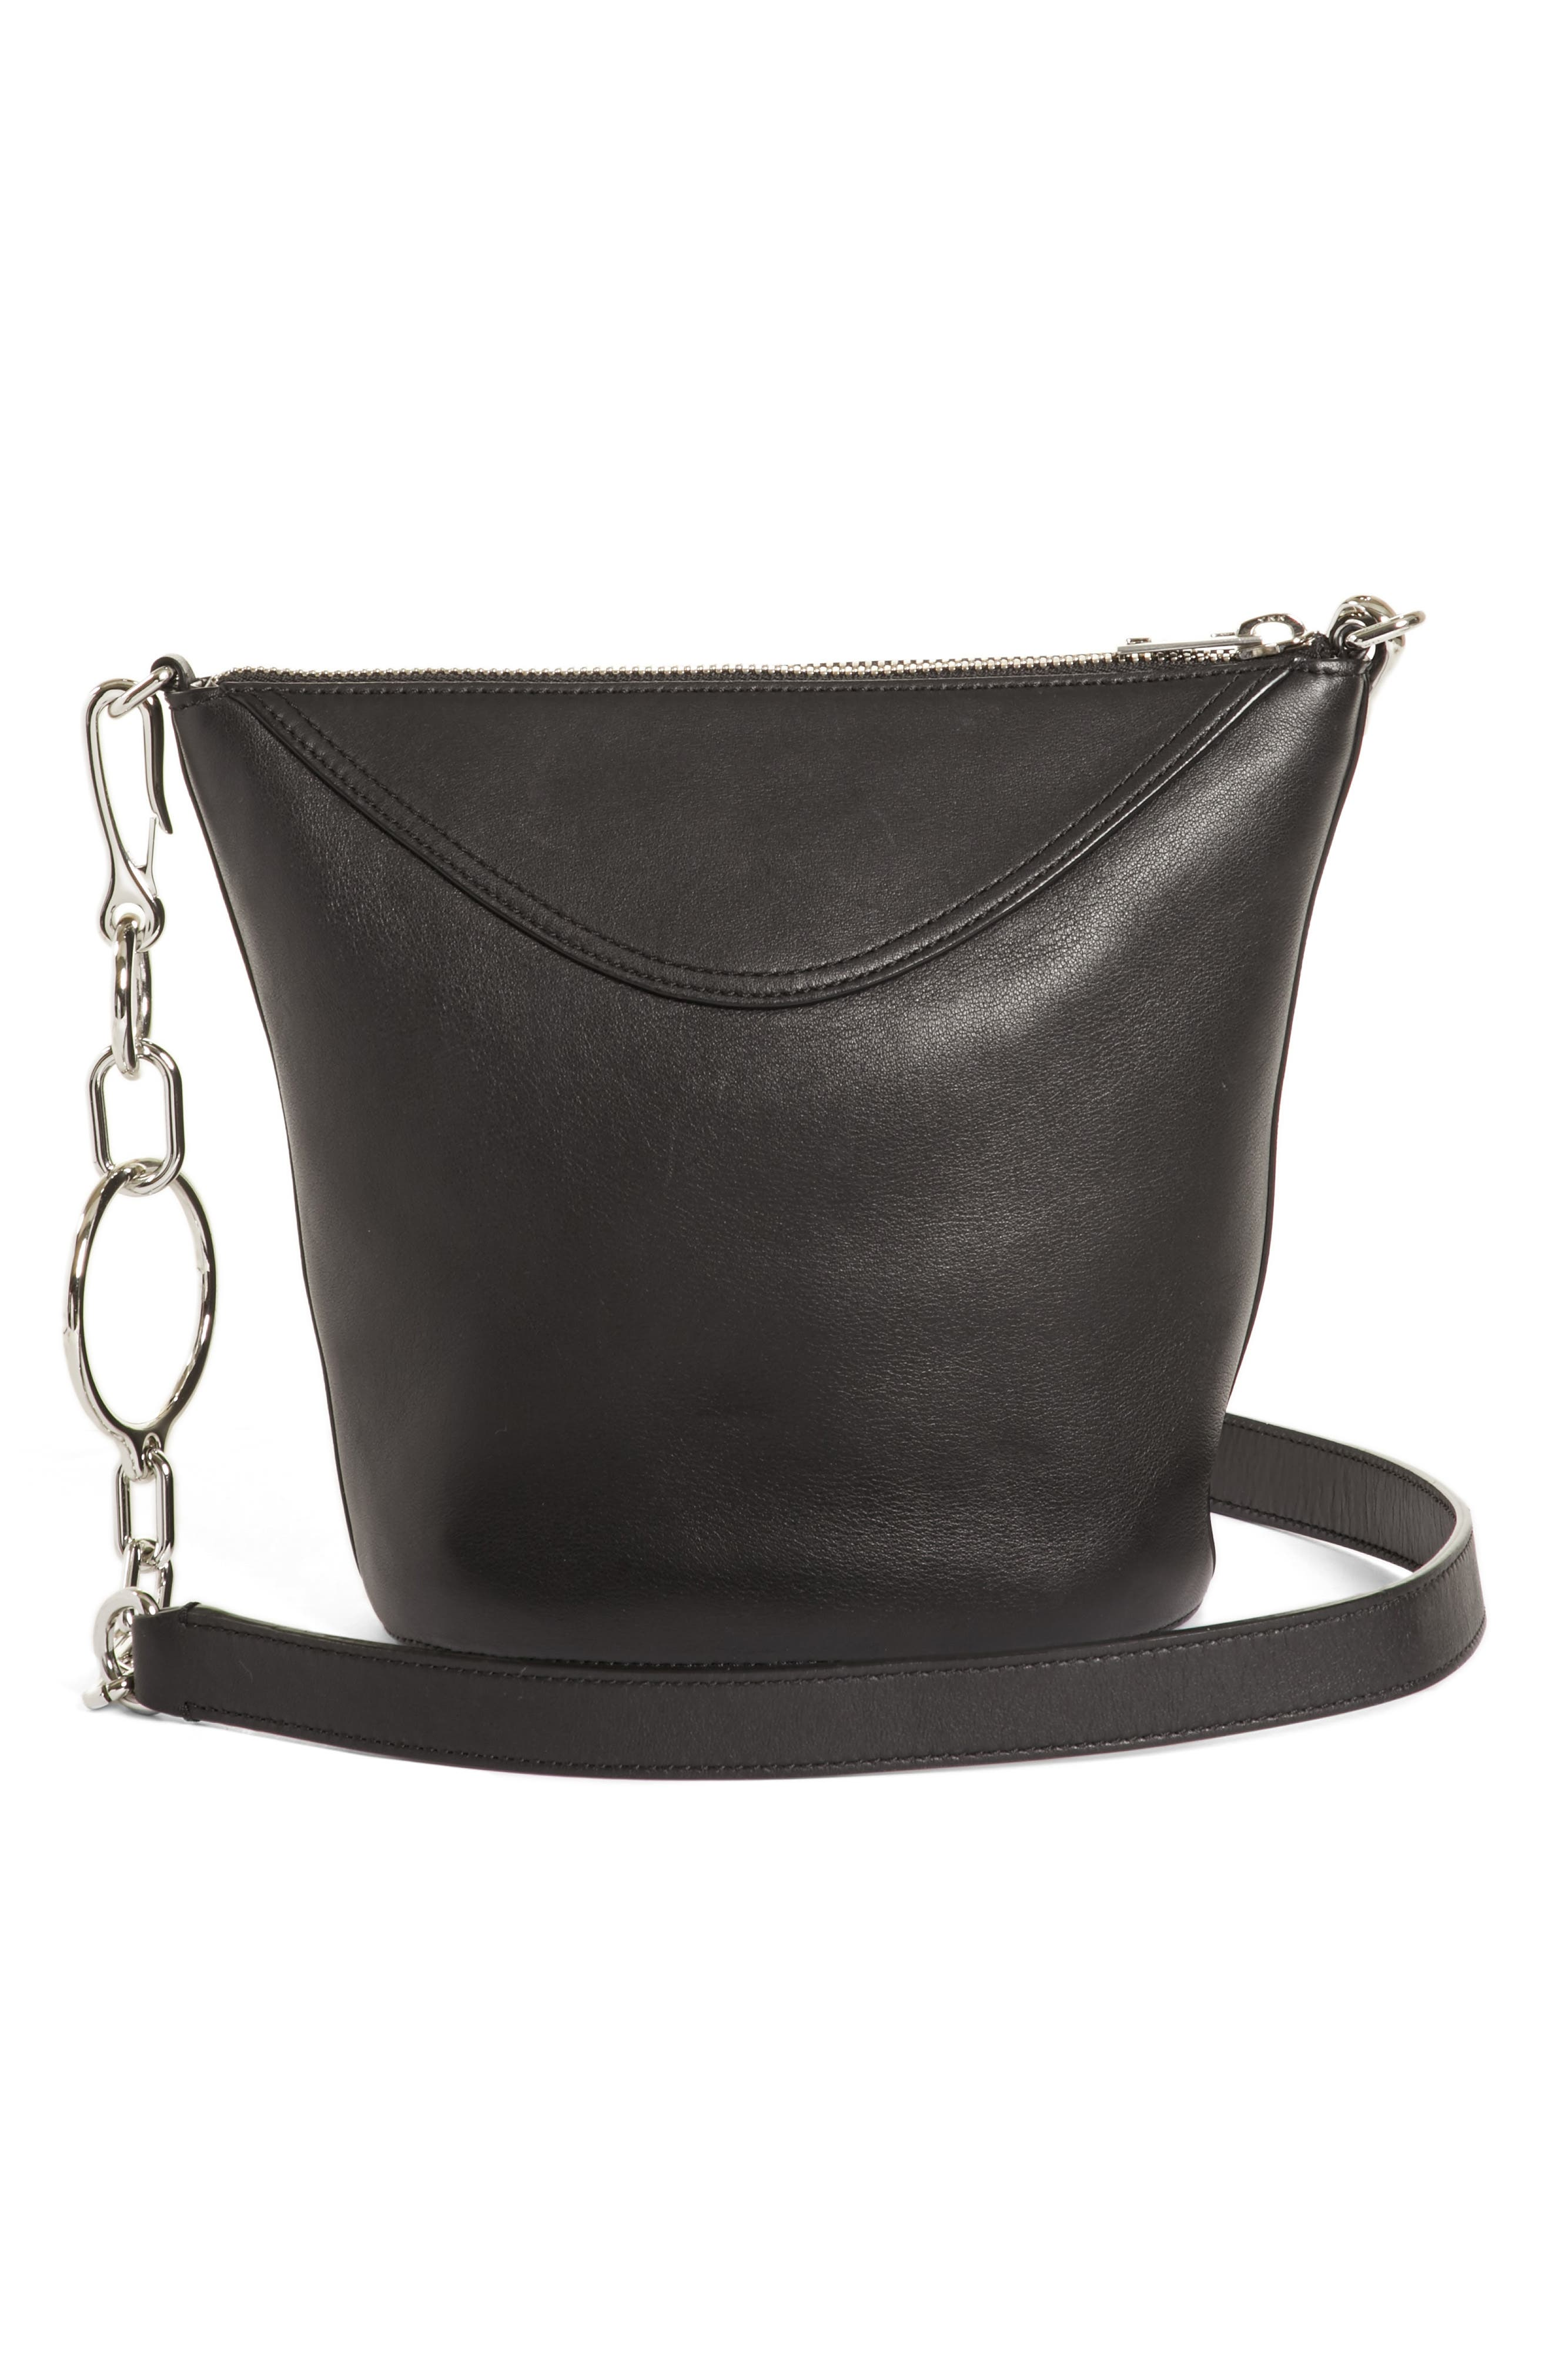 Ace Leather Bucket Bag,                             Alternate thumbnail 3, color,                             001